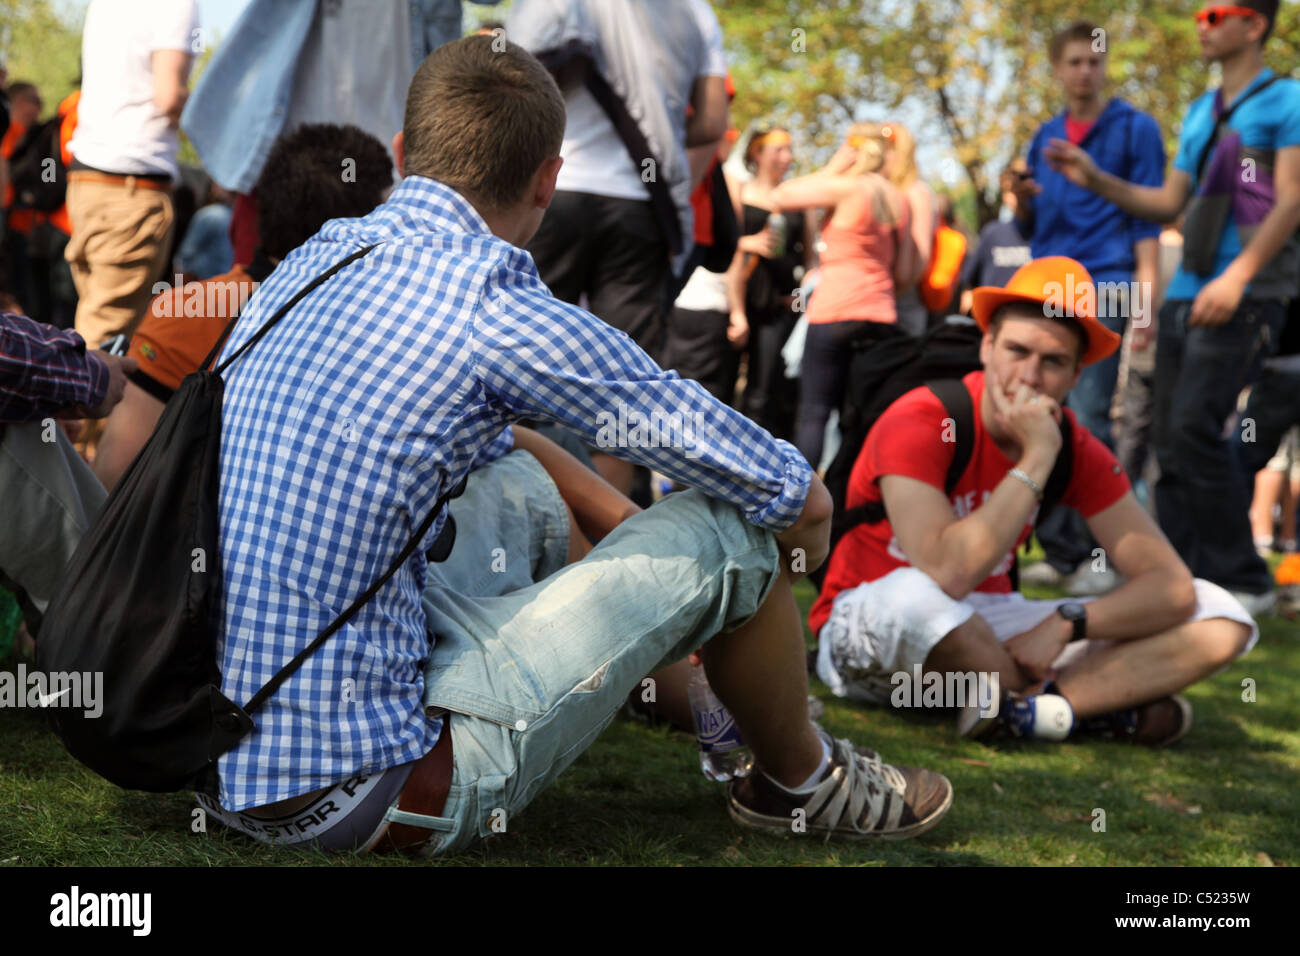 Queens Day Celebrations Amsterdam - Stock Image